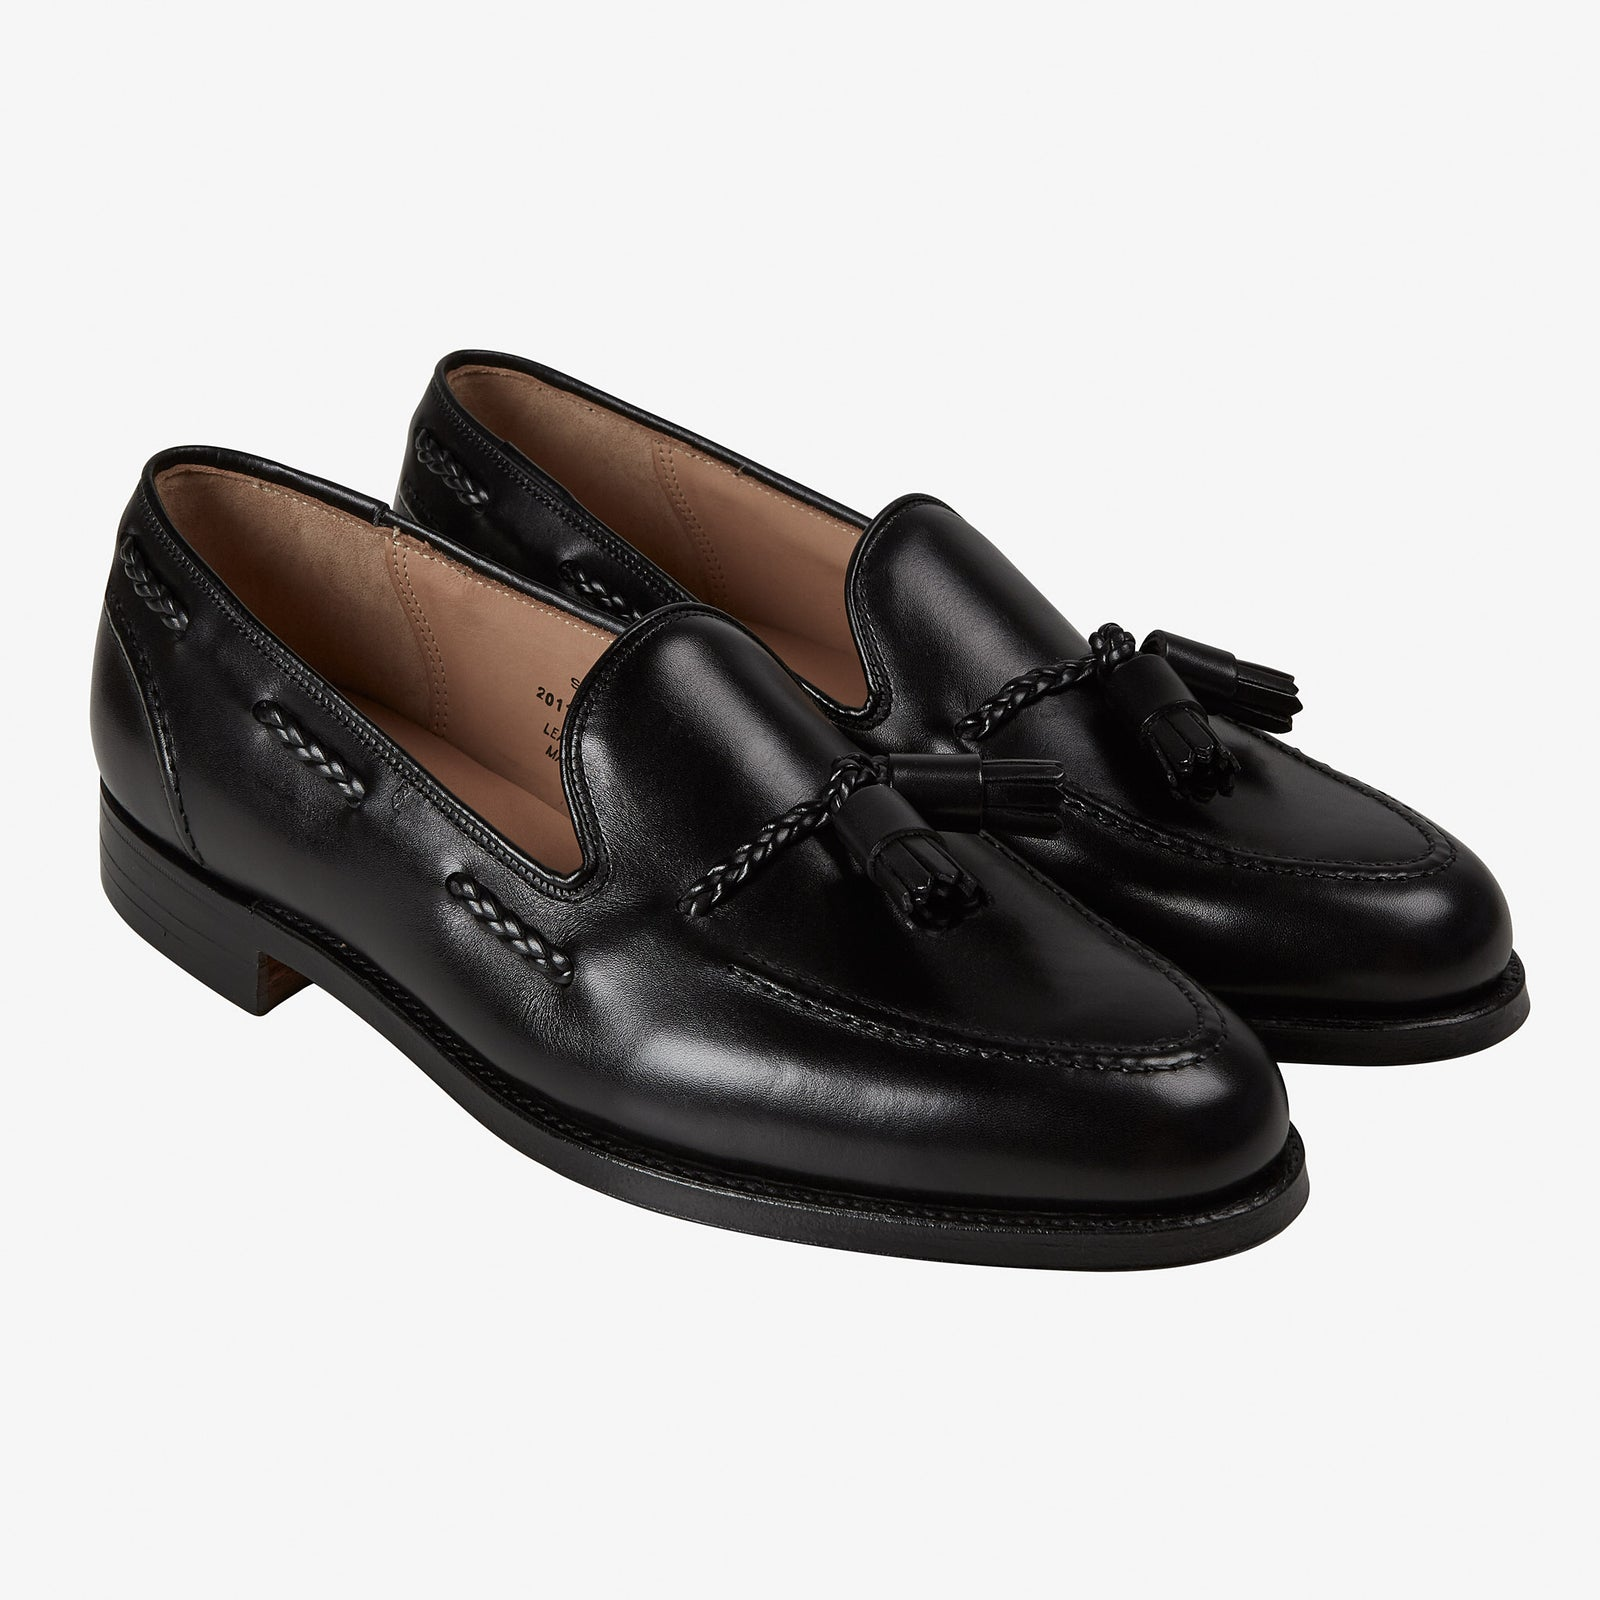 Crockett & Jones for Anglo-Italian Studridge Loafer Black Calf